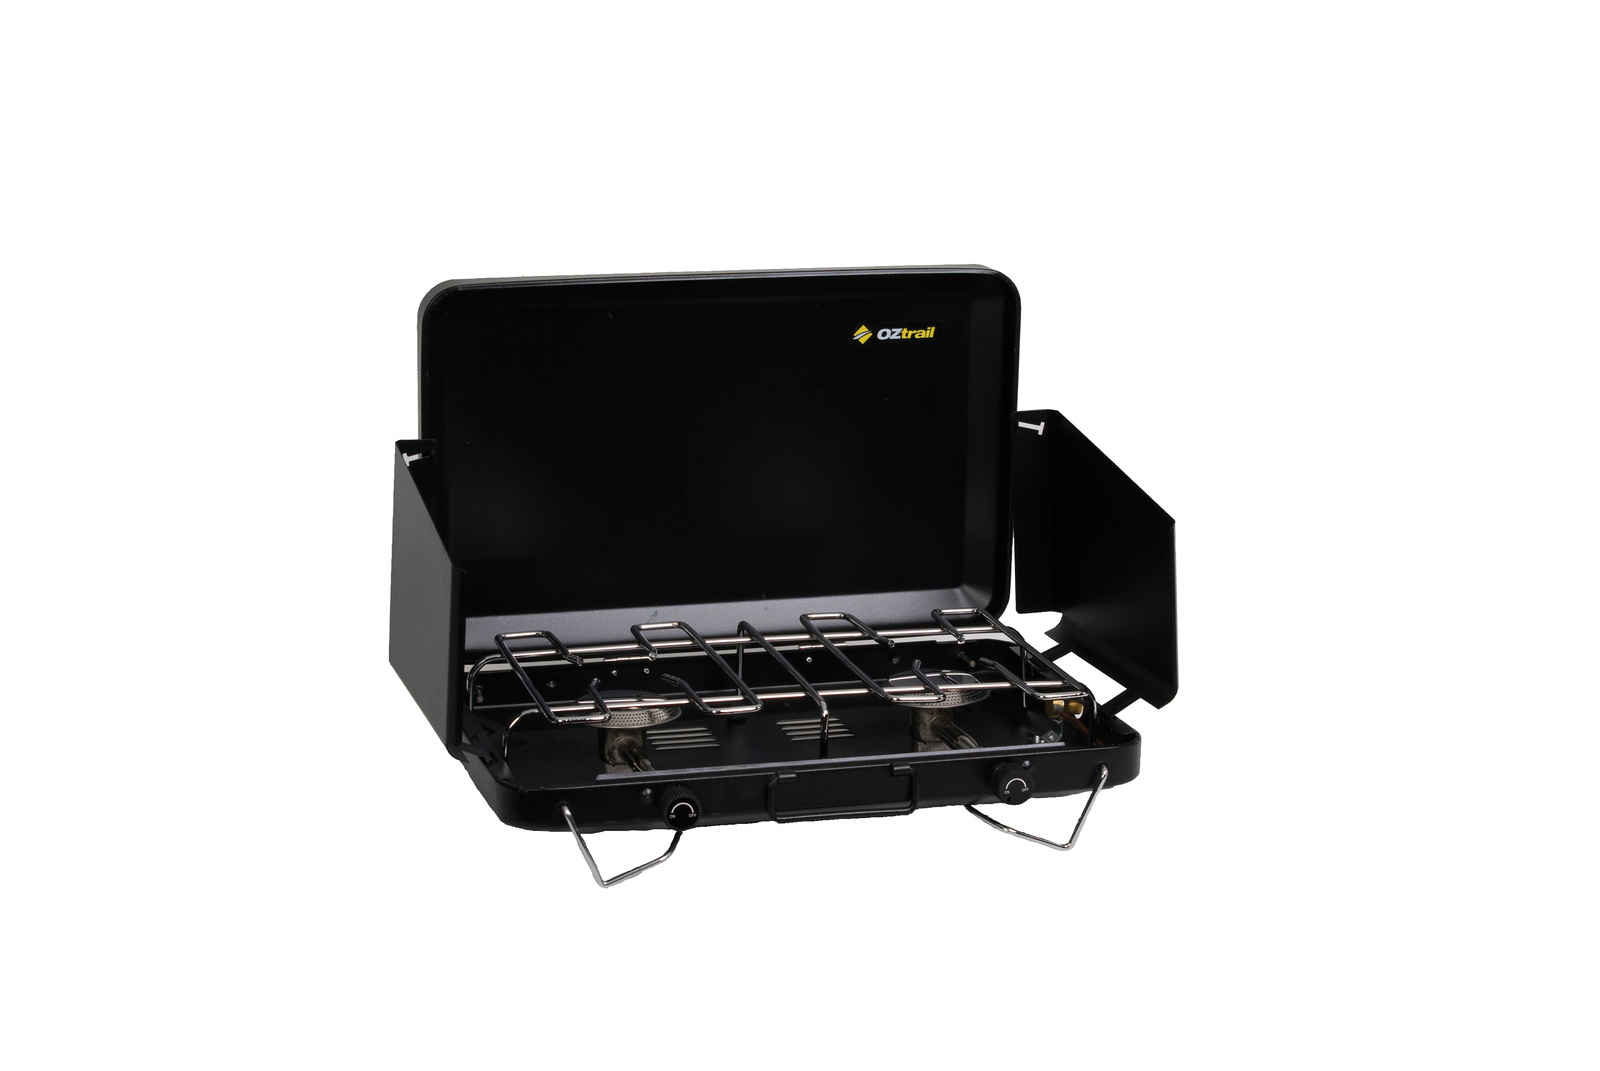 oztrail cooker